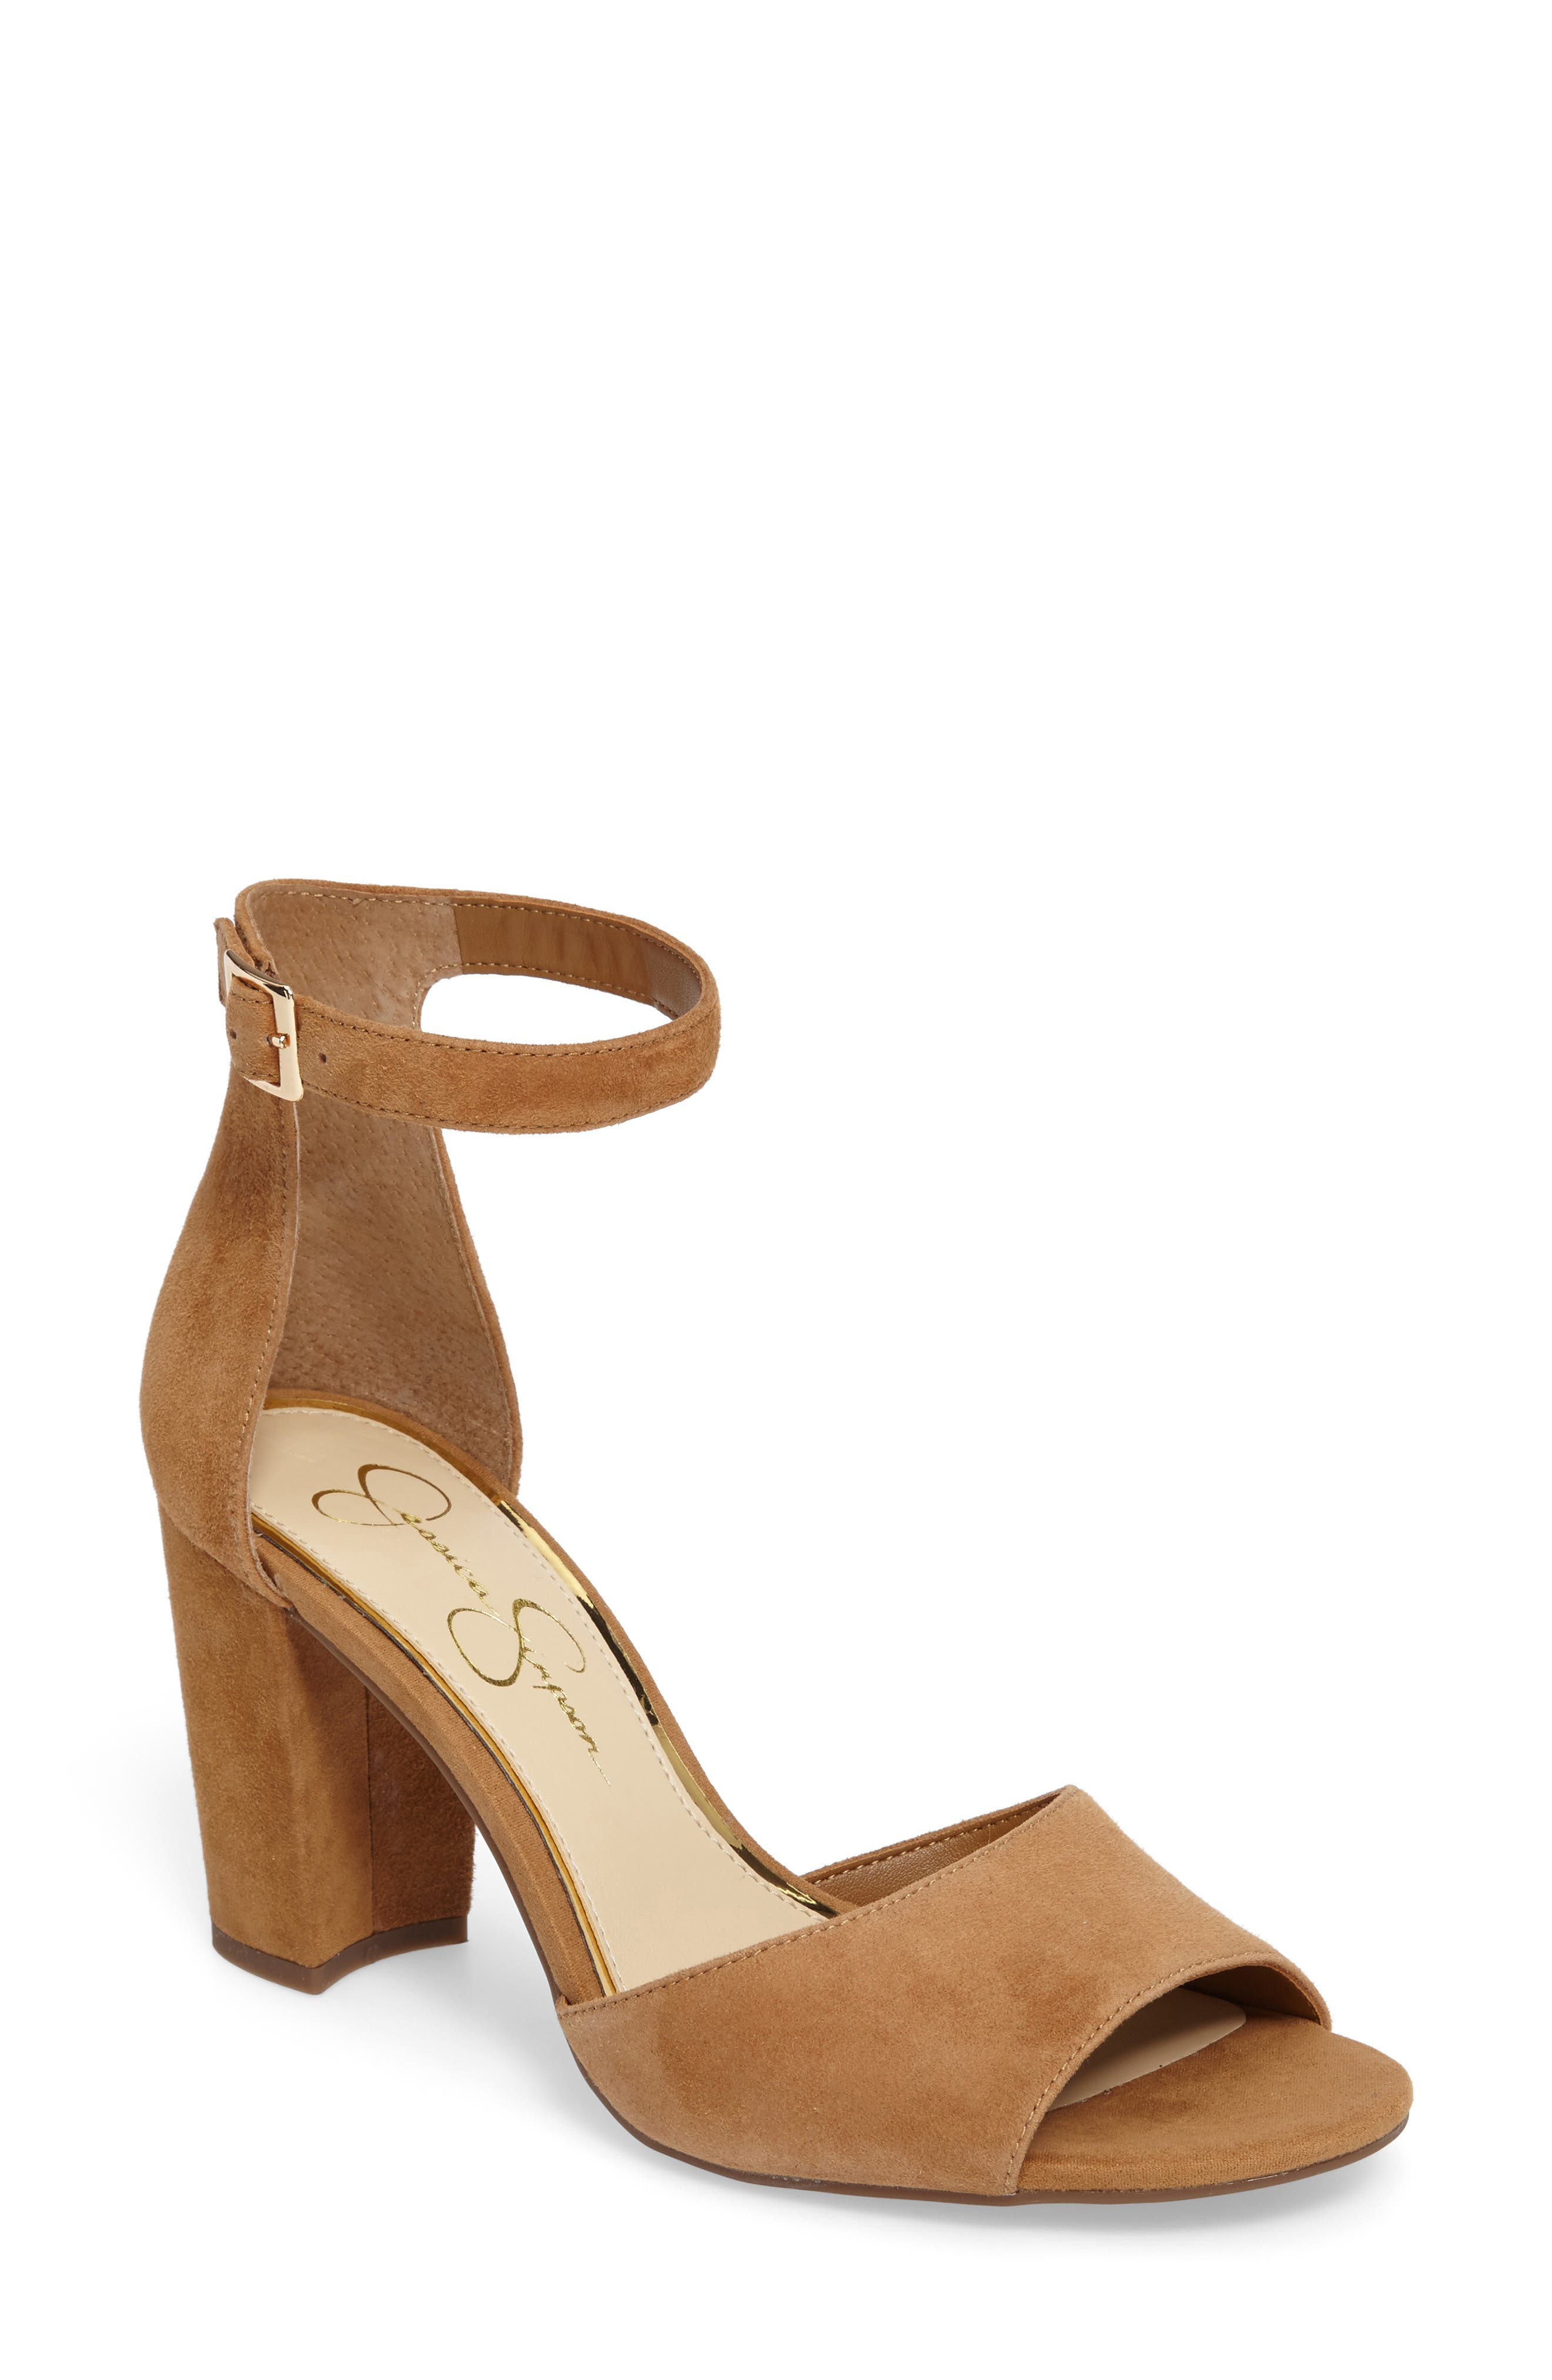 Jessica Simpson Wedding Shoes Nordstrom